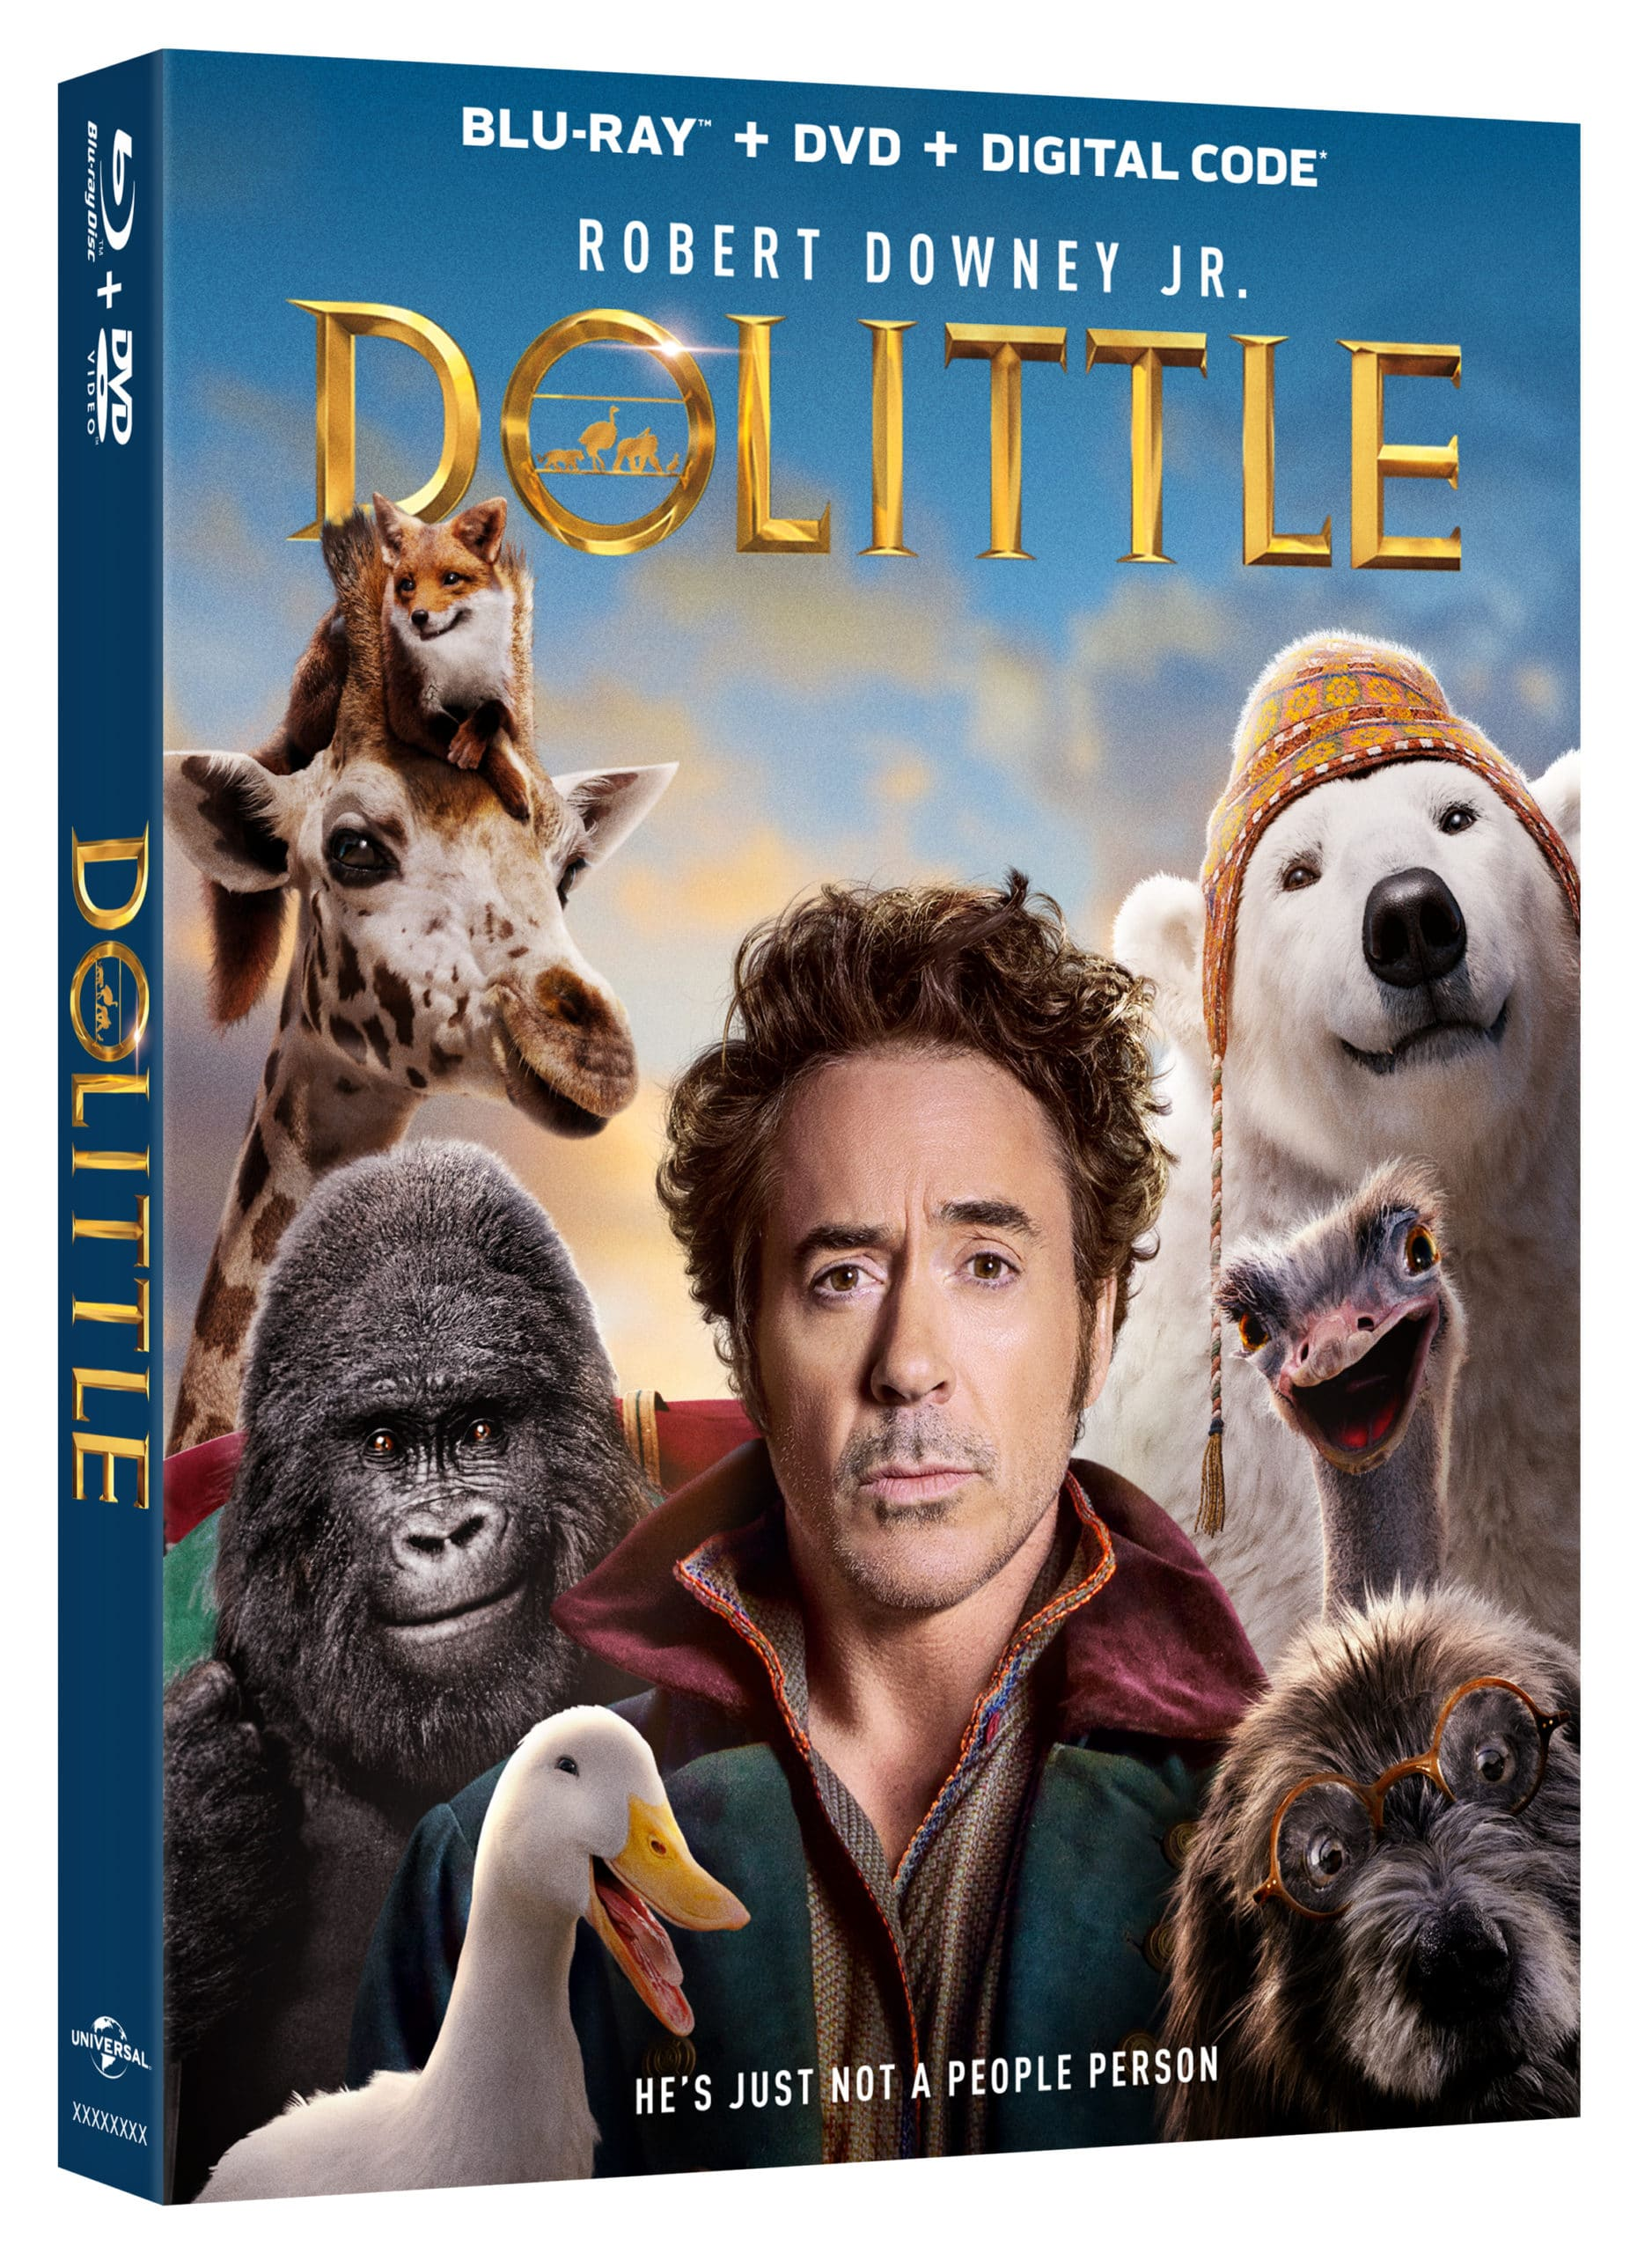 Own the movie all the animals are talking about and go an epic journey with a hilarious always cold bear, an anxious gorilla, a lovable giraffe, a ferocious tiger, and more! Dolittle available on 4K Ultra HD™, Blu-ray™, DVD and On Demand TODAY!